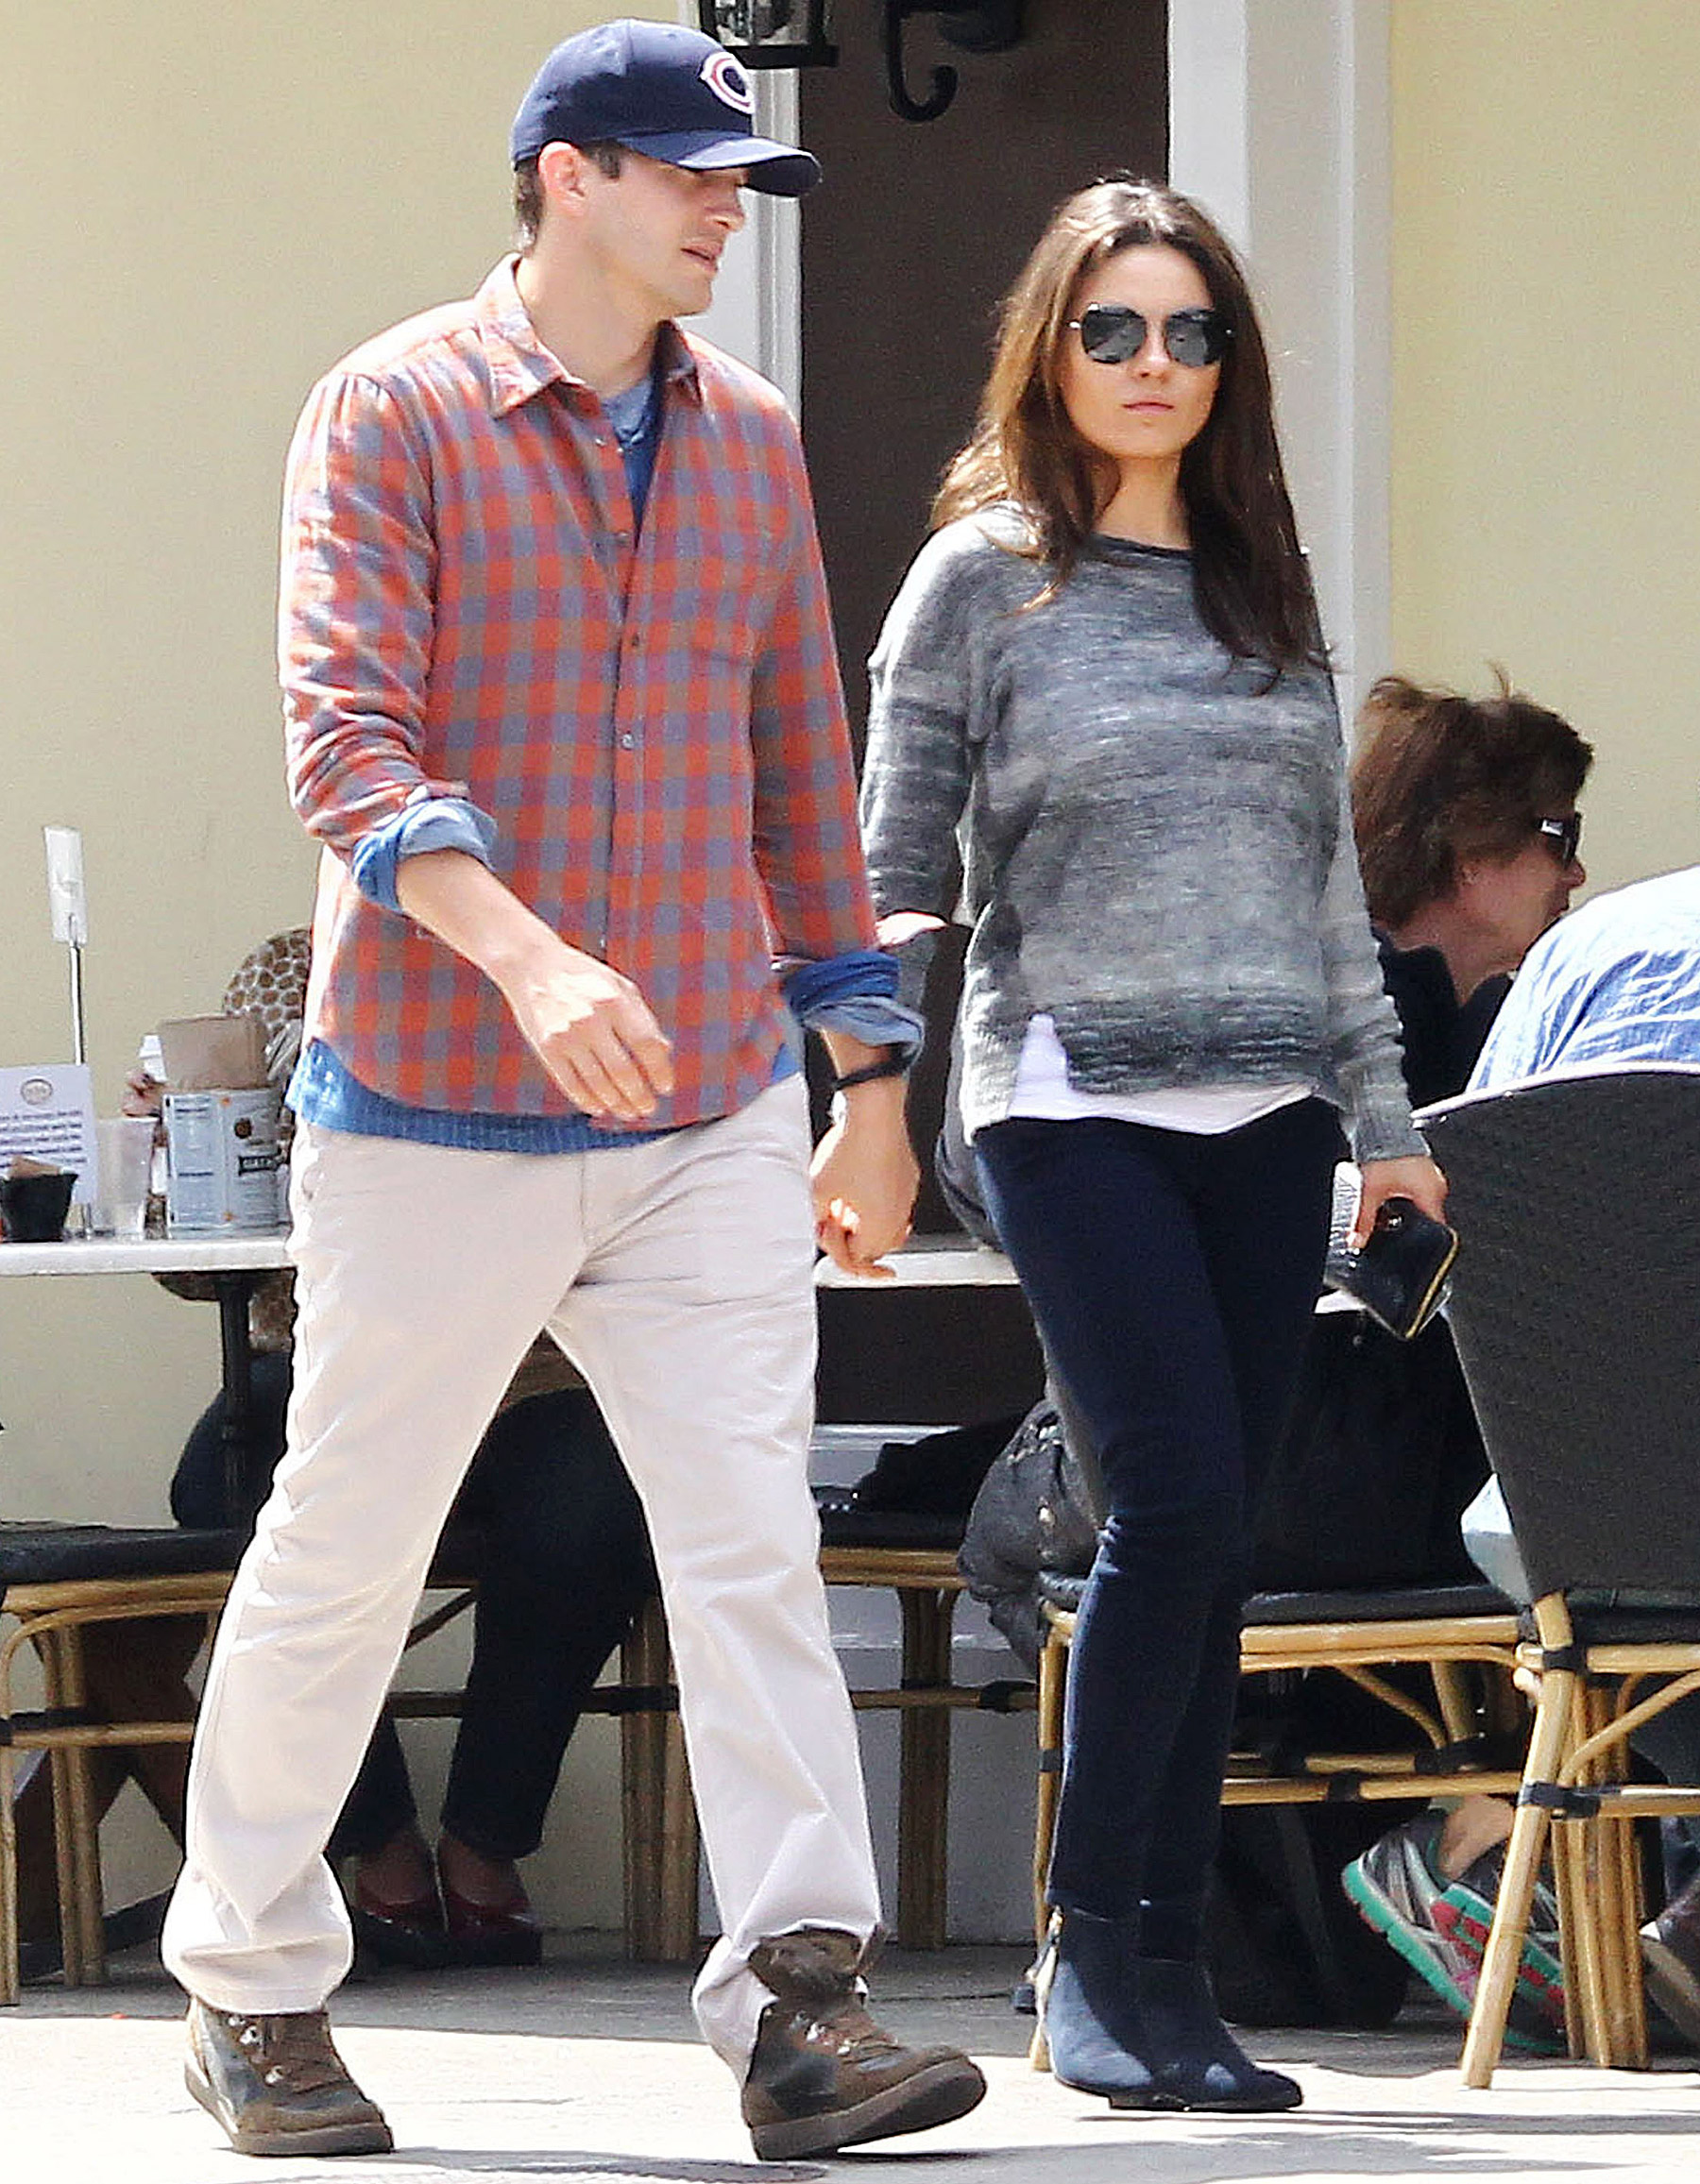 New rumors: Ashton Kutcher and Mila Kunis got married 01/06/2015 47